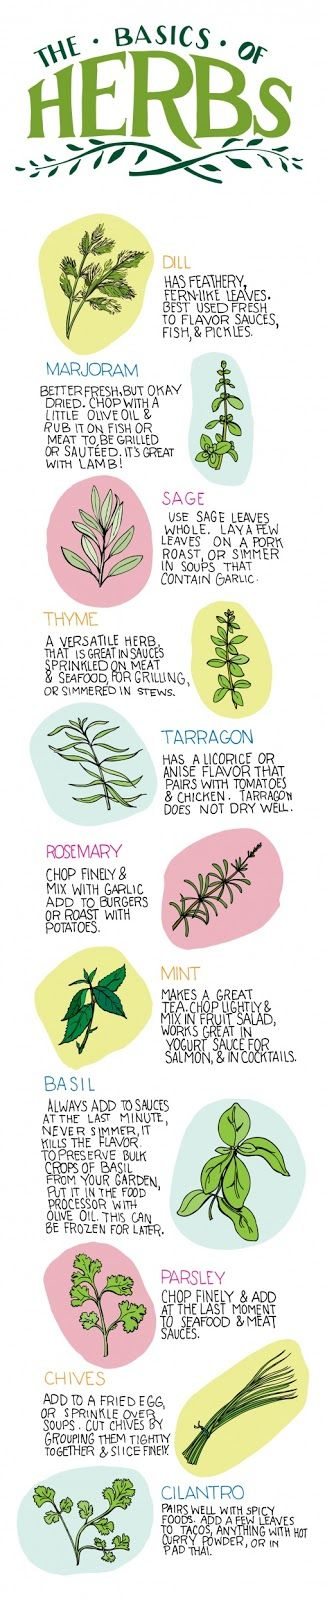 herb-garden-ideas-6.jpg (325×1600)